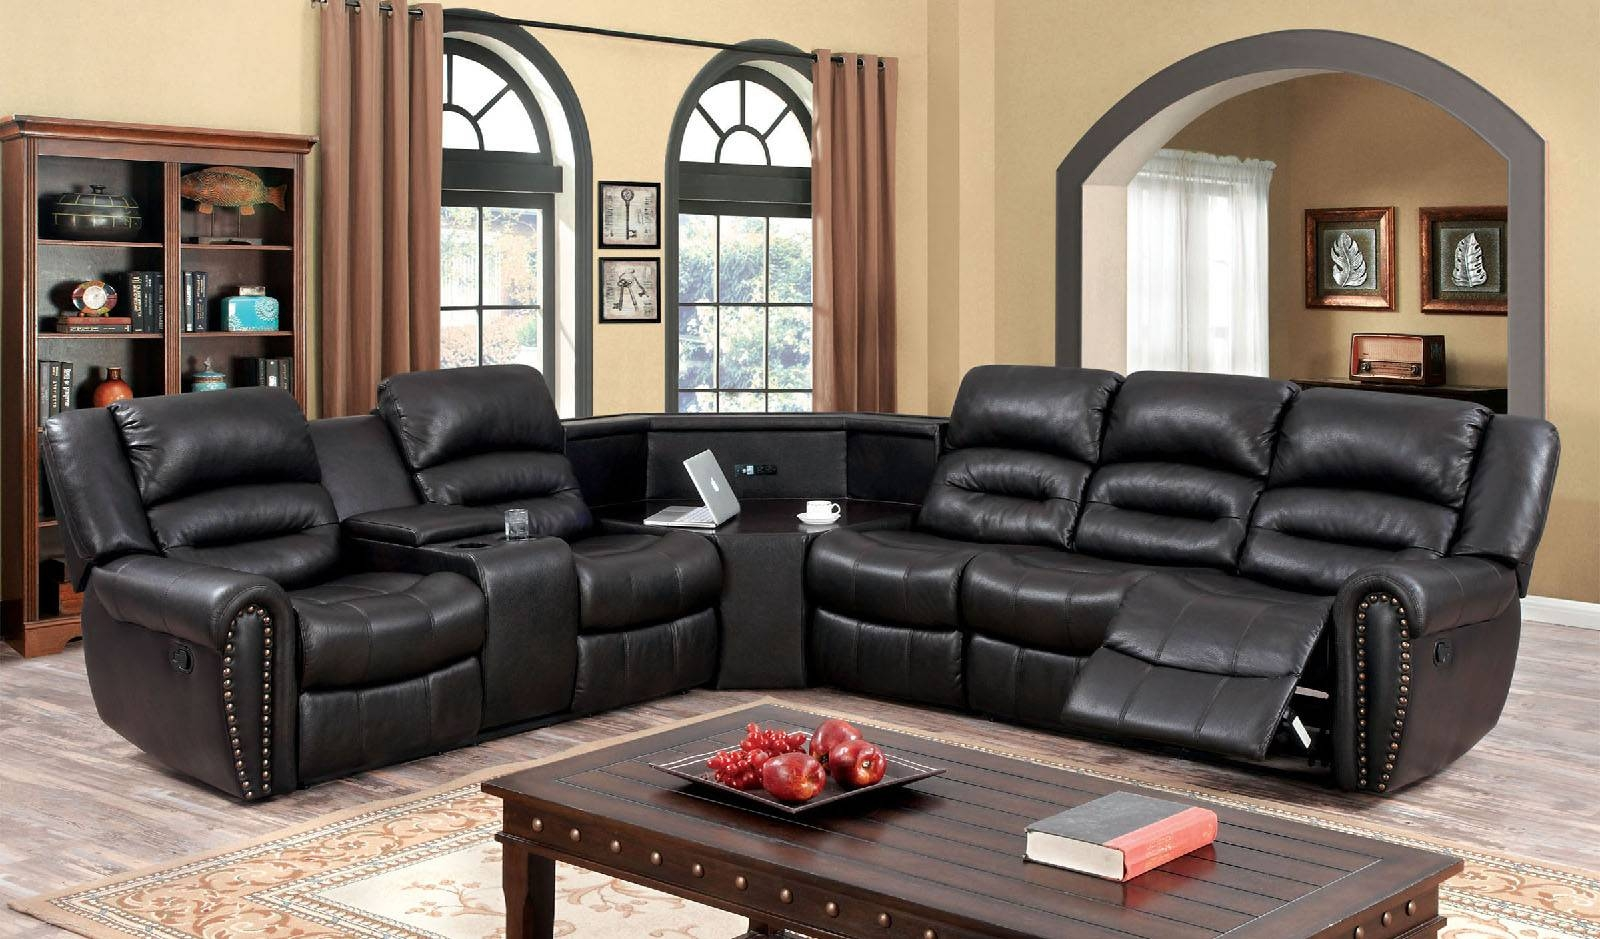 Sectional Sofa Design : Small Drawer Sectional Sofas With for Sofas With Cup Holders (Image 14 of 15)